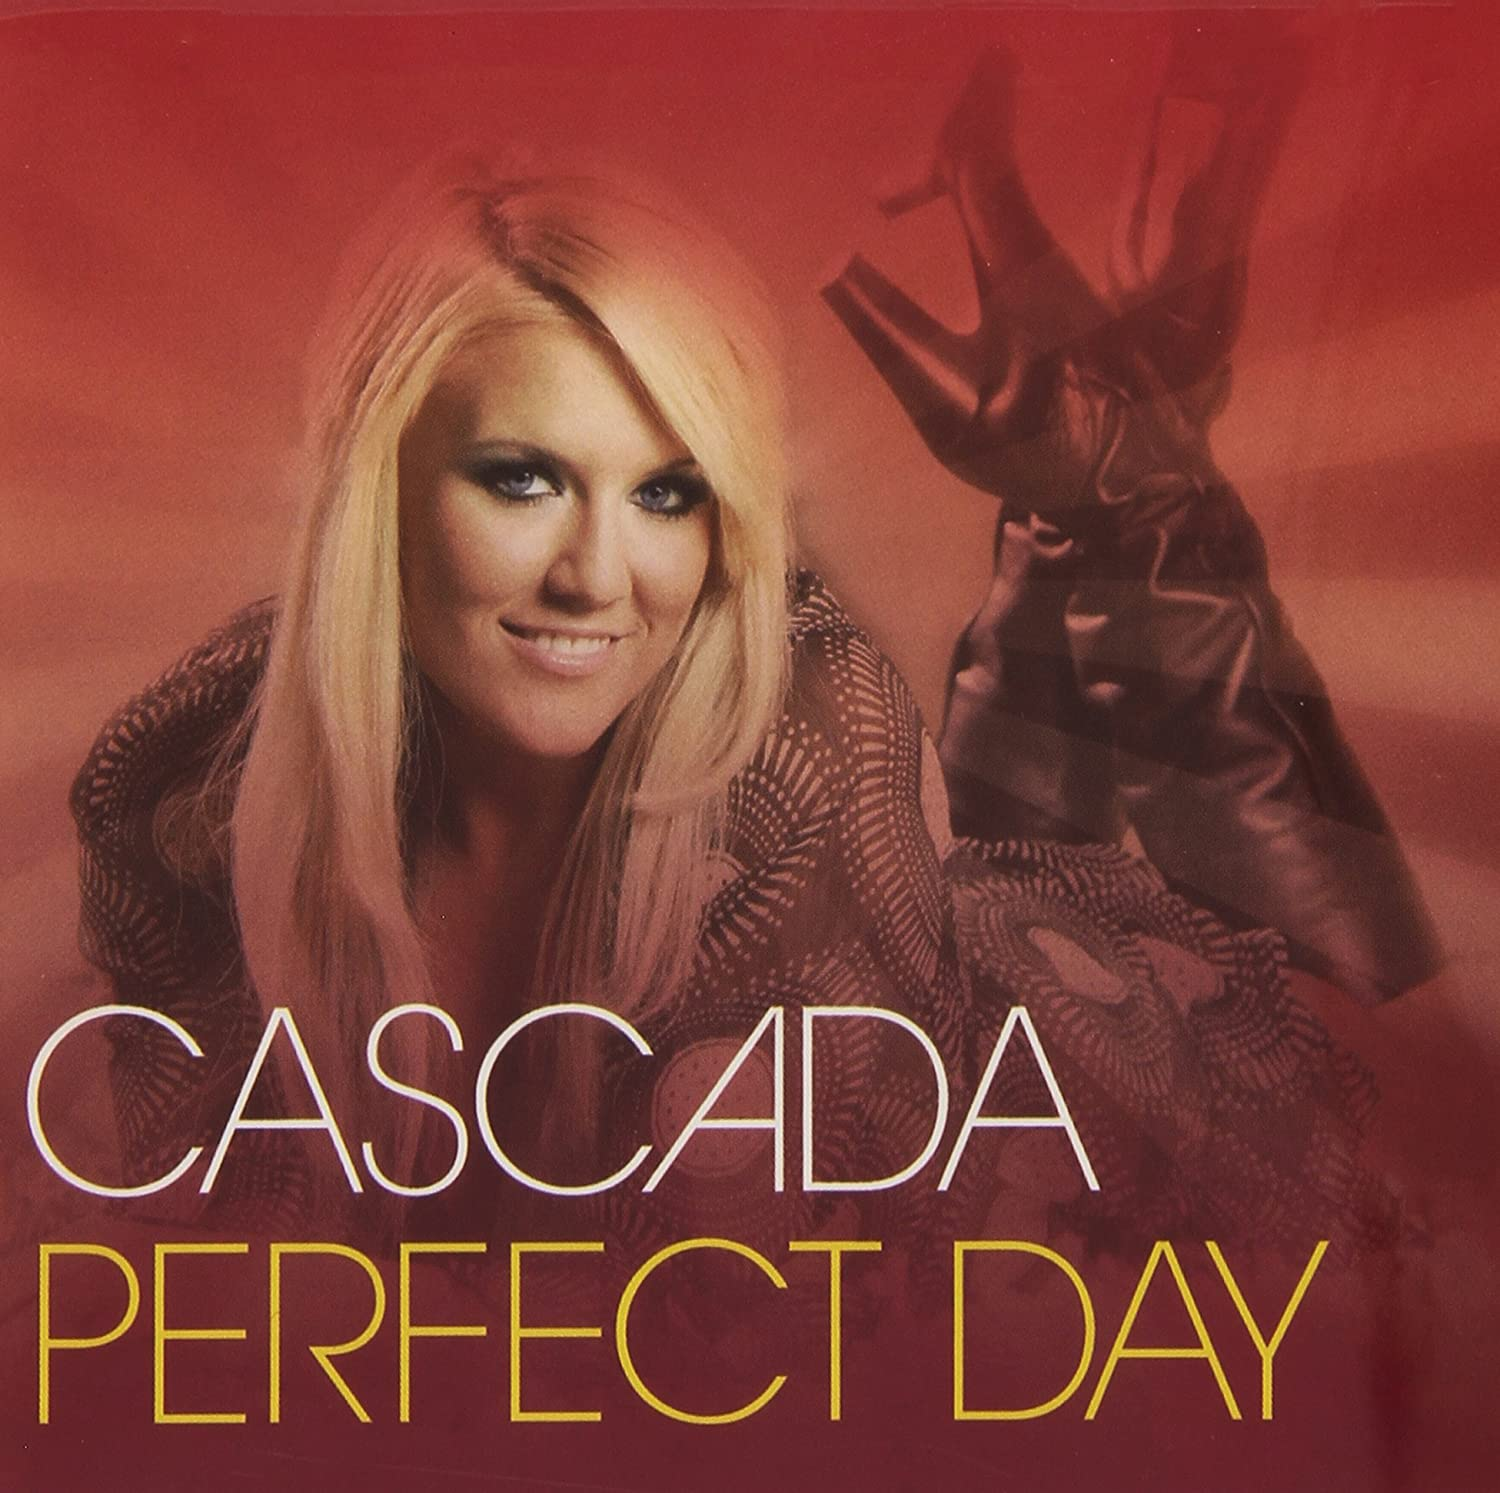 Cascada Everytime We Touch Video Perfect Day